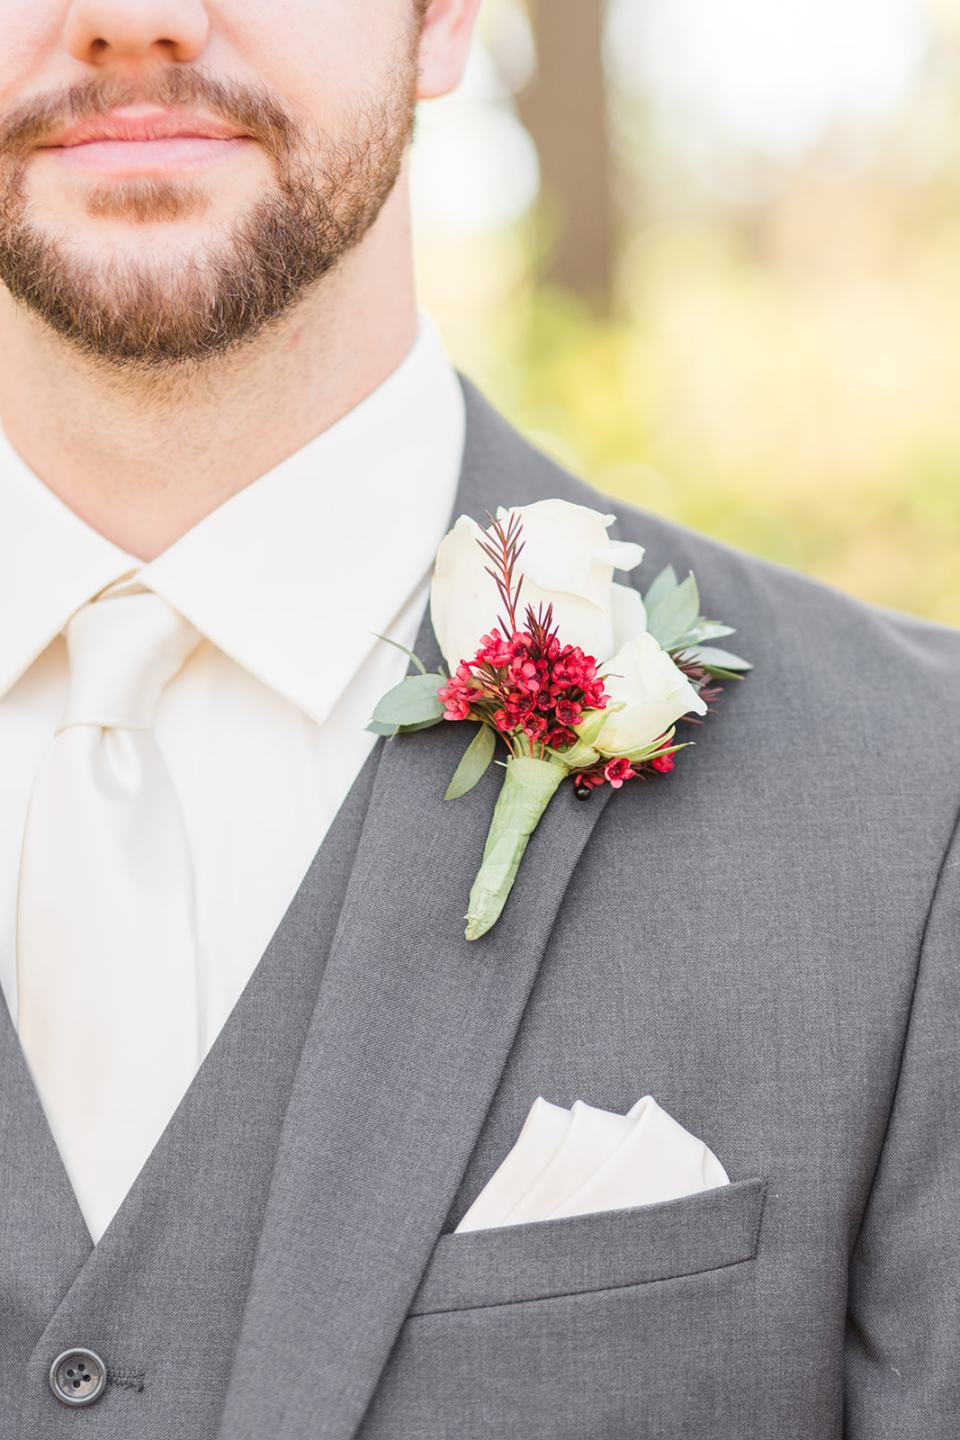 A groom with a white tie and white and red wedding boutonnieres